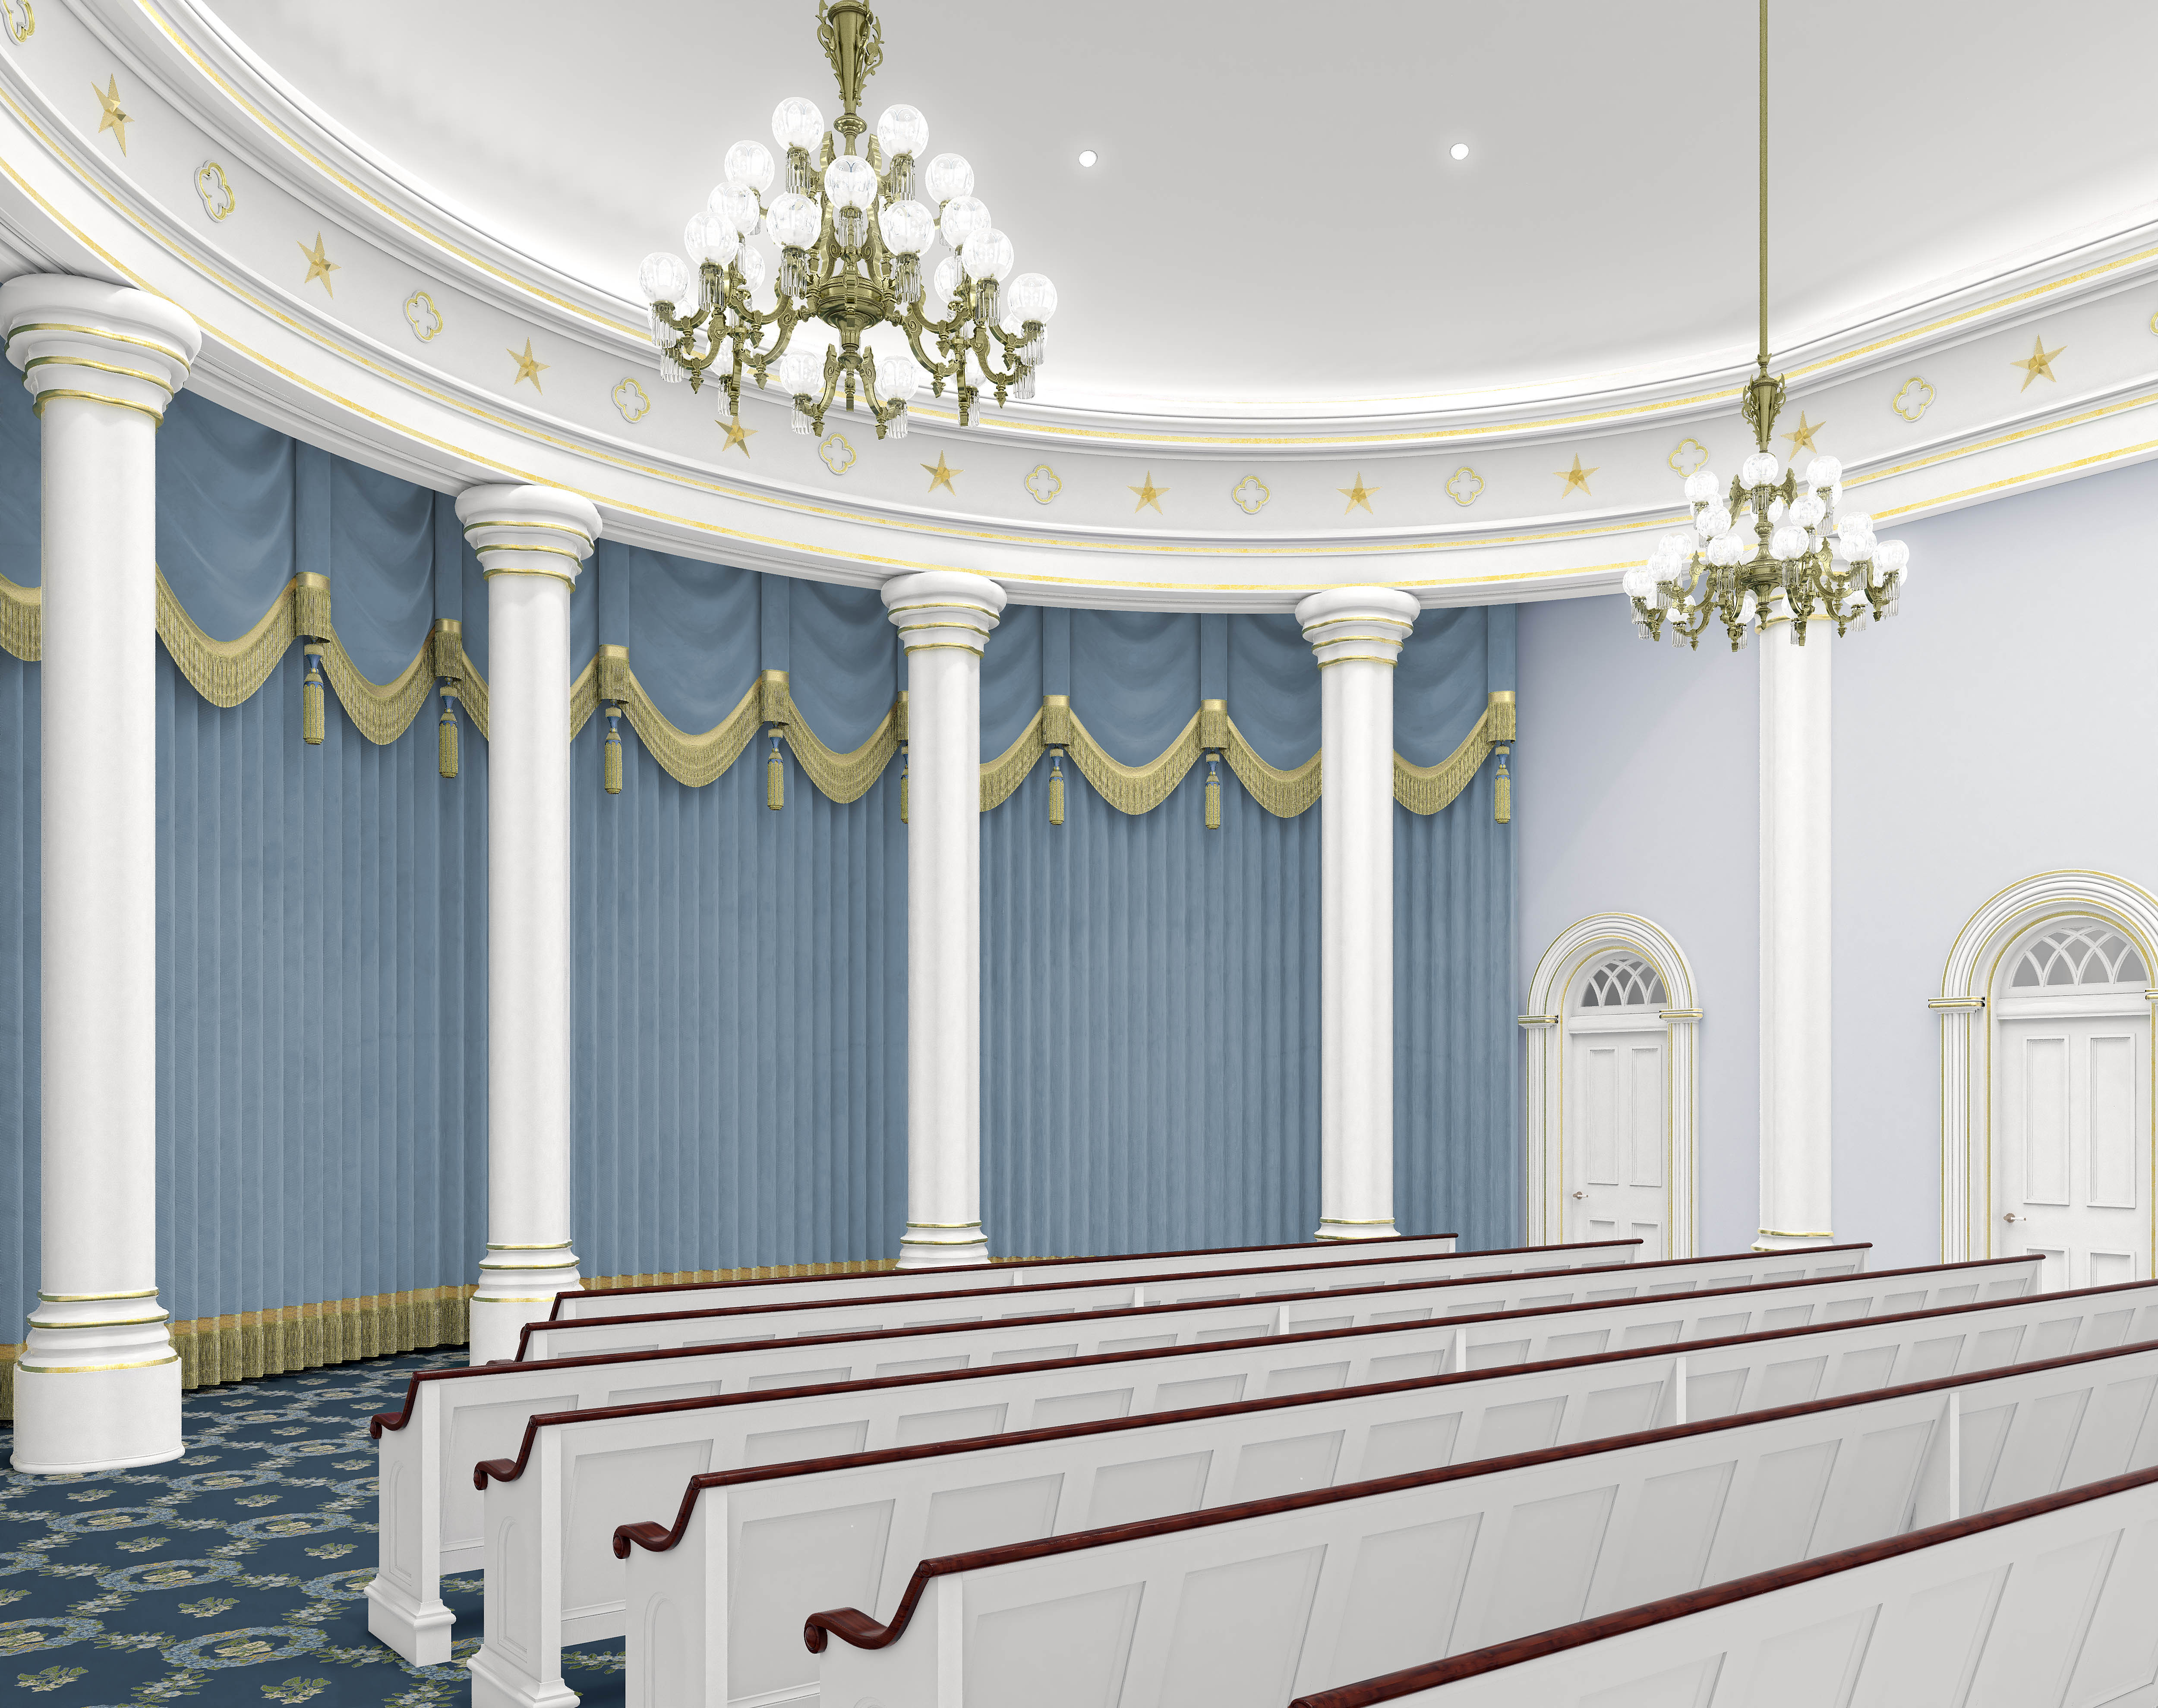 St  George Utah Temple renovation plans, renderings